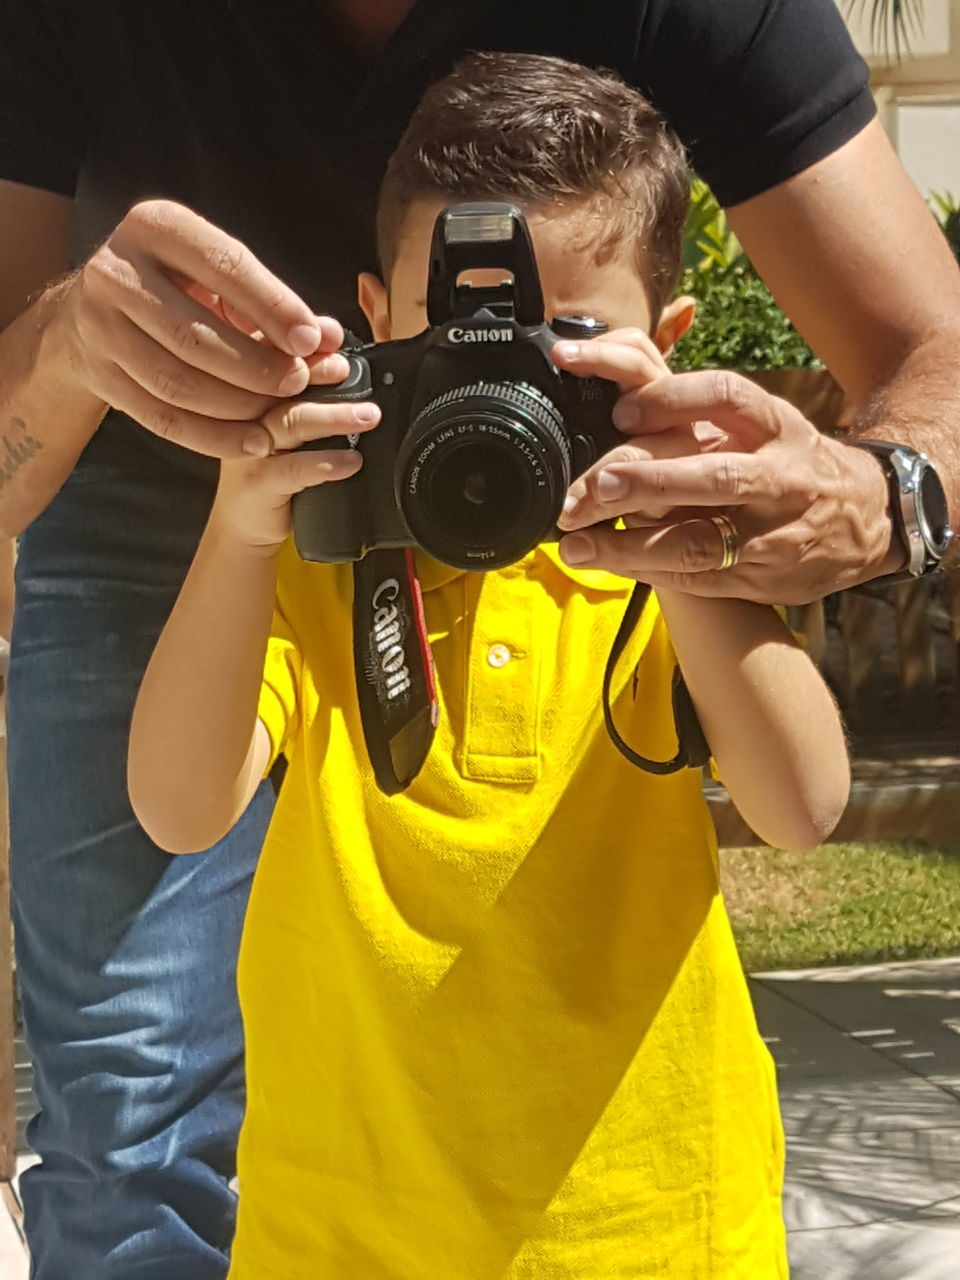 camera - photographic equipment, photography themes, photographing, technology, photographer, real people, leisure activity, digital camera, holding, yellow, one person, professional occupation, digital single-lens reflex camera, slr camera, camera, day, lifestyles, outdoors, men, close-up, human hand